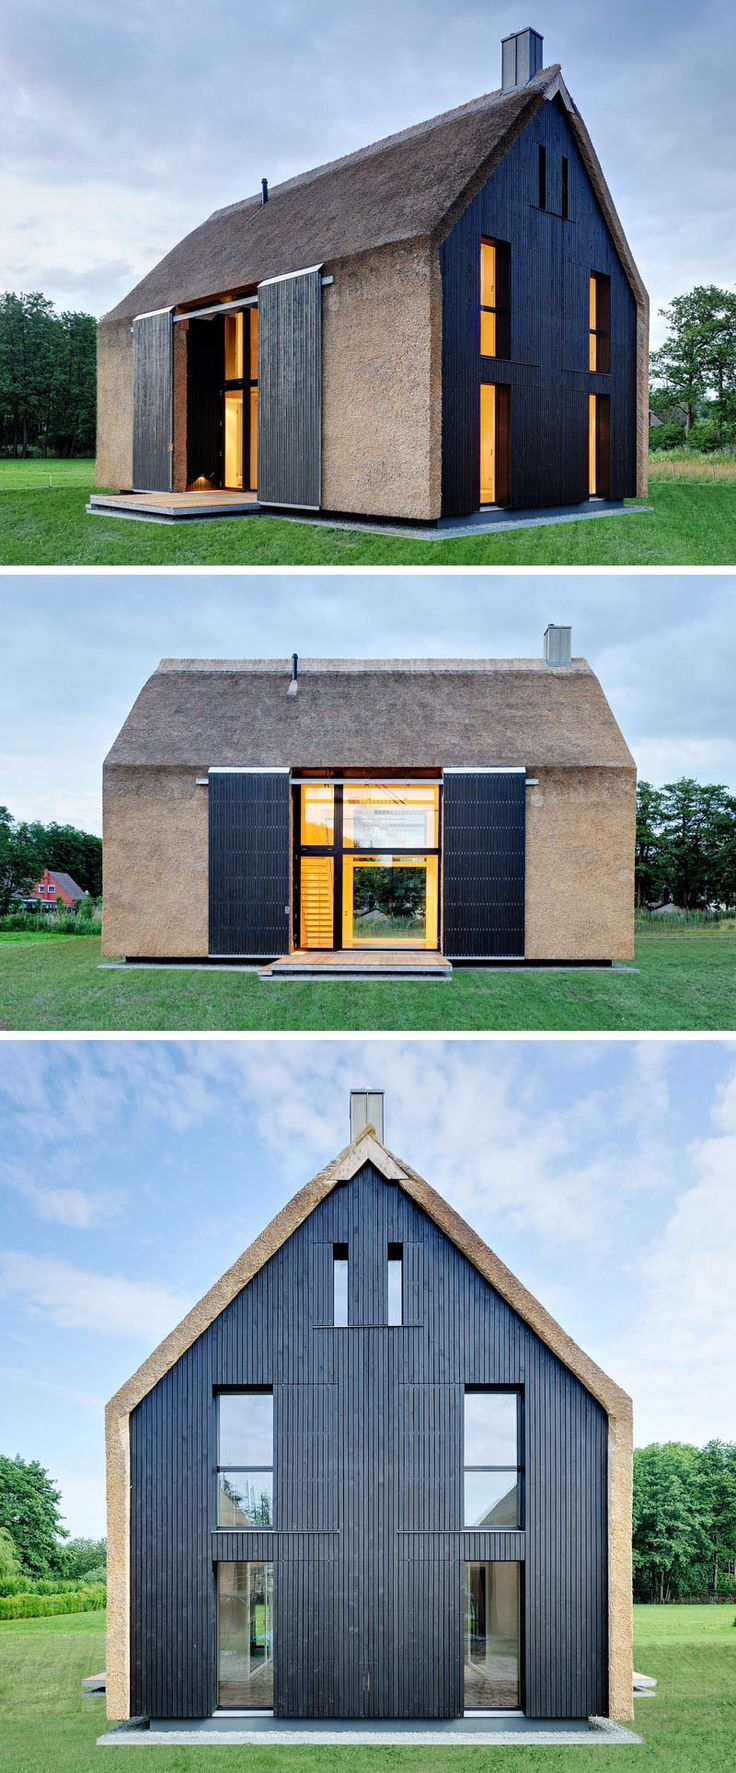 Architecture Design House best 25+ scandinavian architecture ideas on pinterest | modern